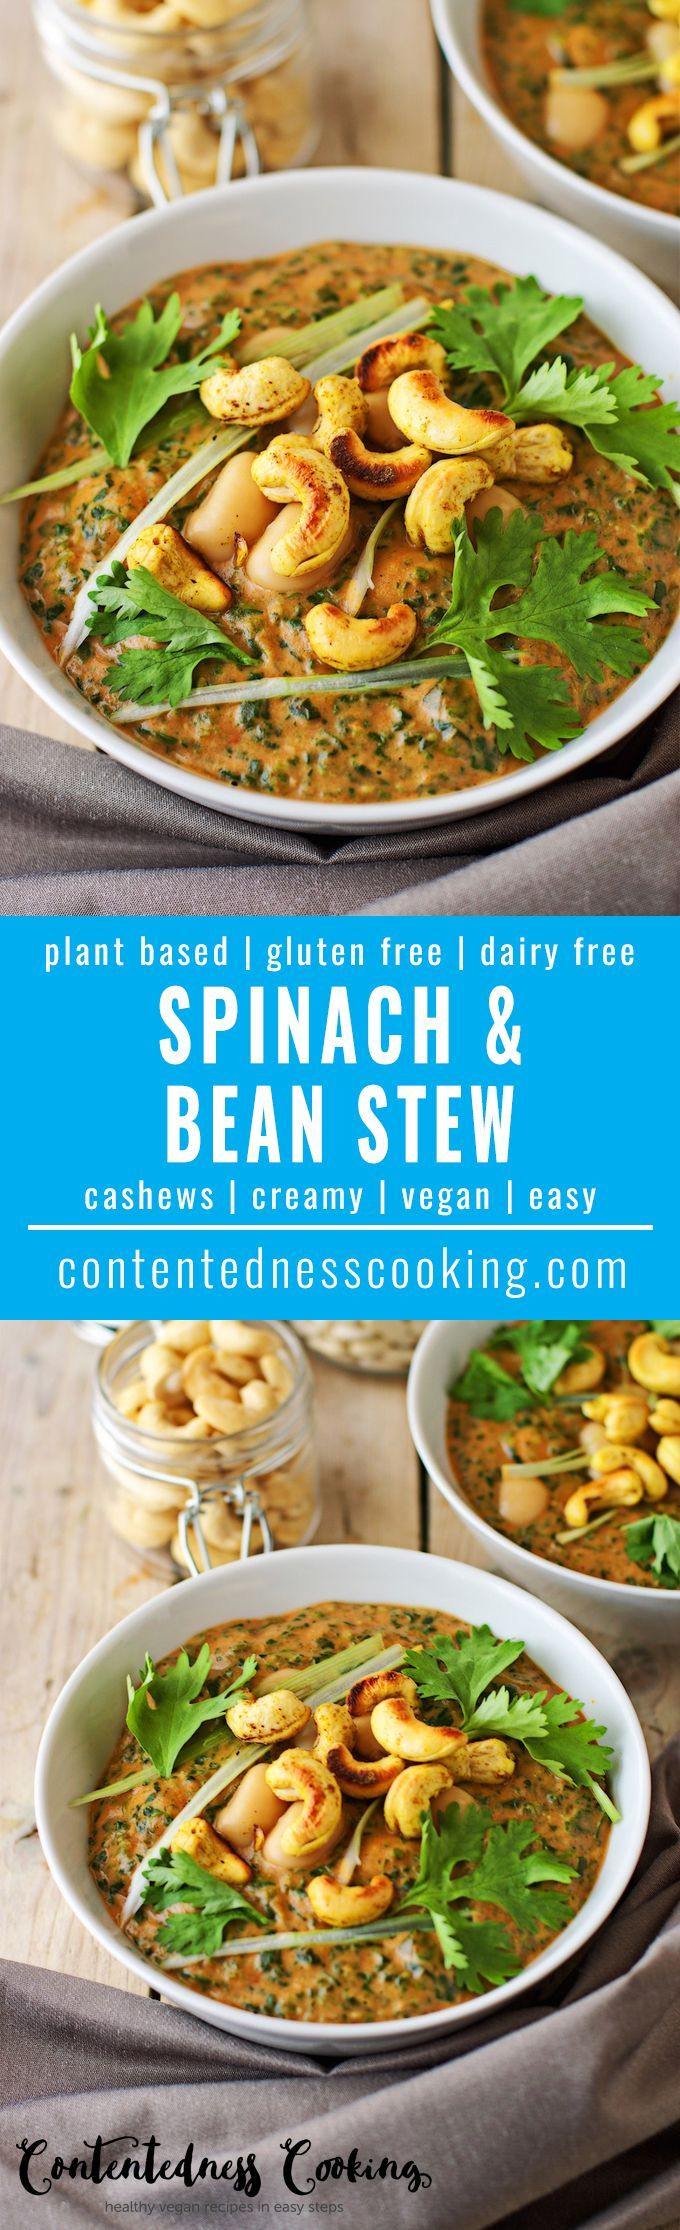 My Cashew Spinach Cannellini Bean Stew gives you a quick and easy infusion of healthy nutrients and amazing taste. It is vegan and gluten free, and will become an favorite in your home.